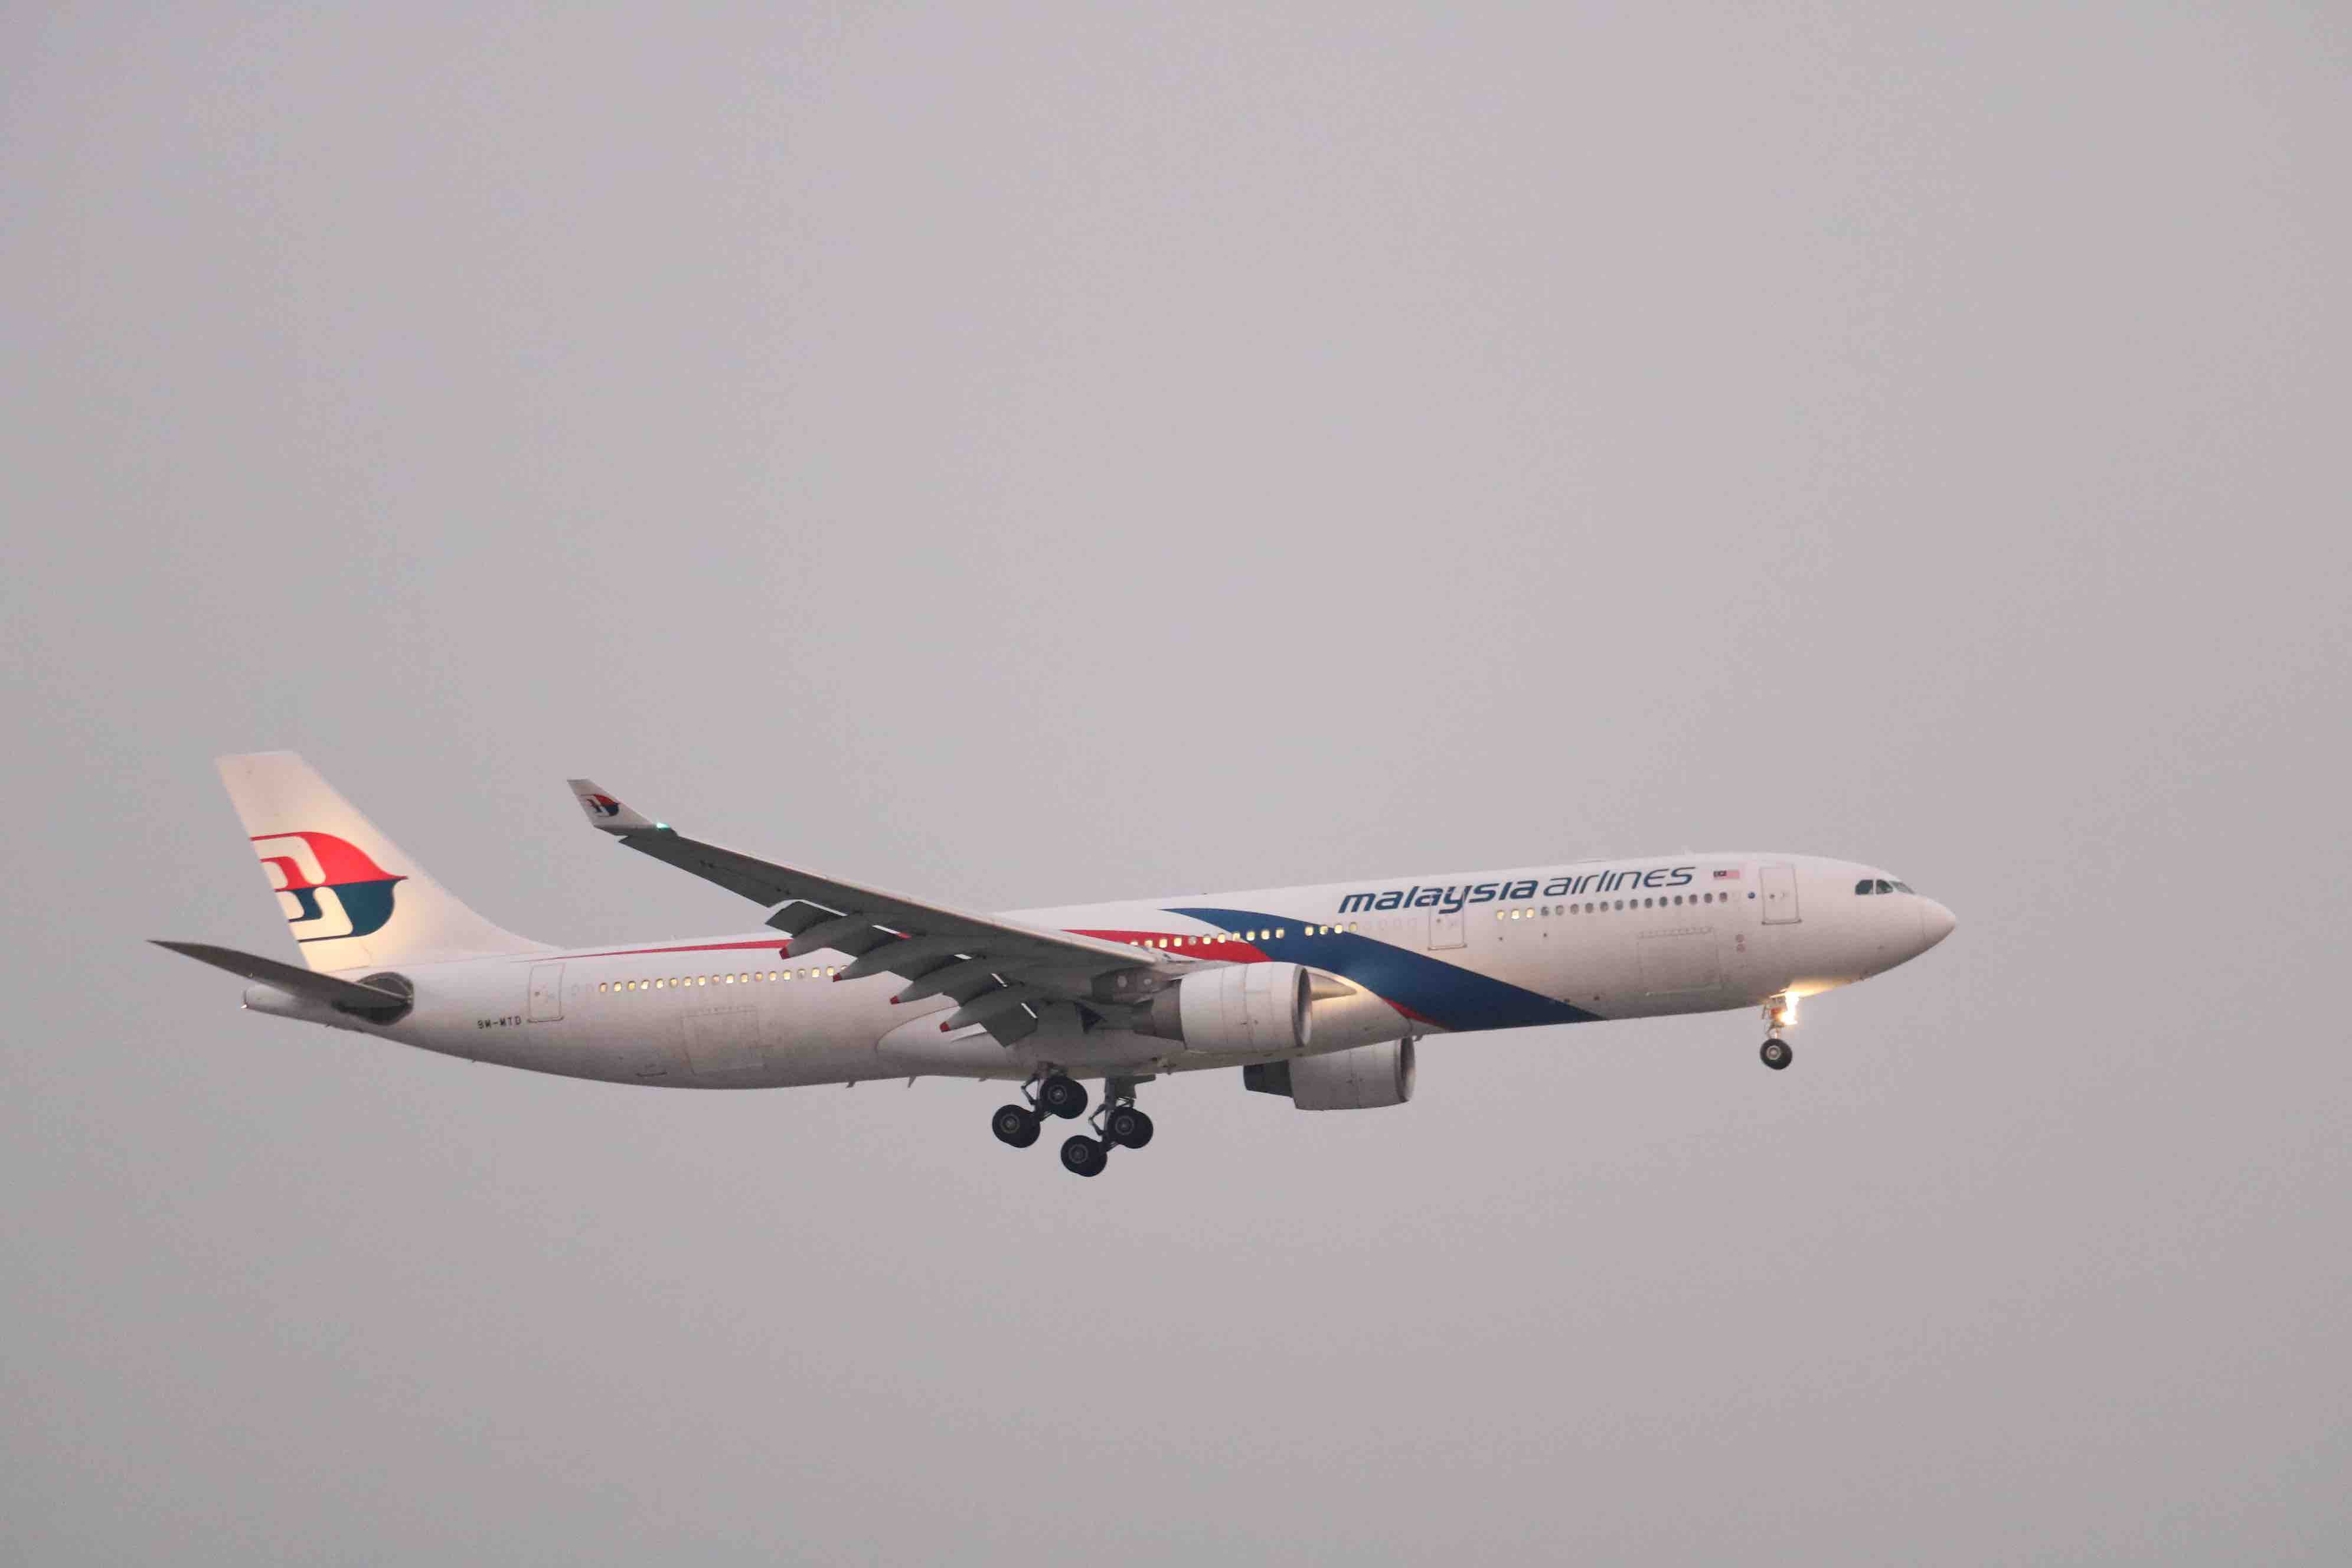 A Malaysia Airlines plane is seen from Ngam May Bay café in Go Vap District, Ho Chi Minh City. Photo: Hoang An / Tuoi Tre